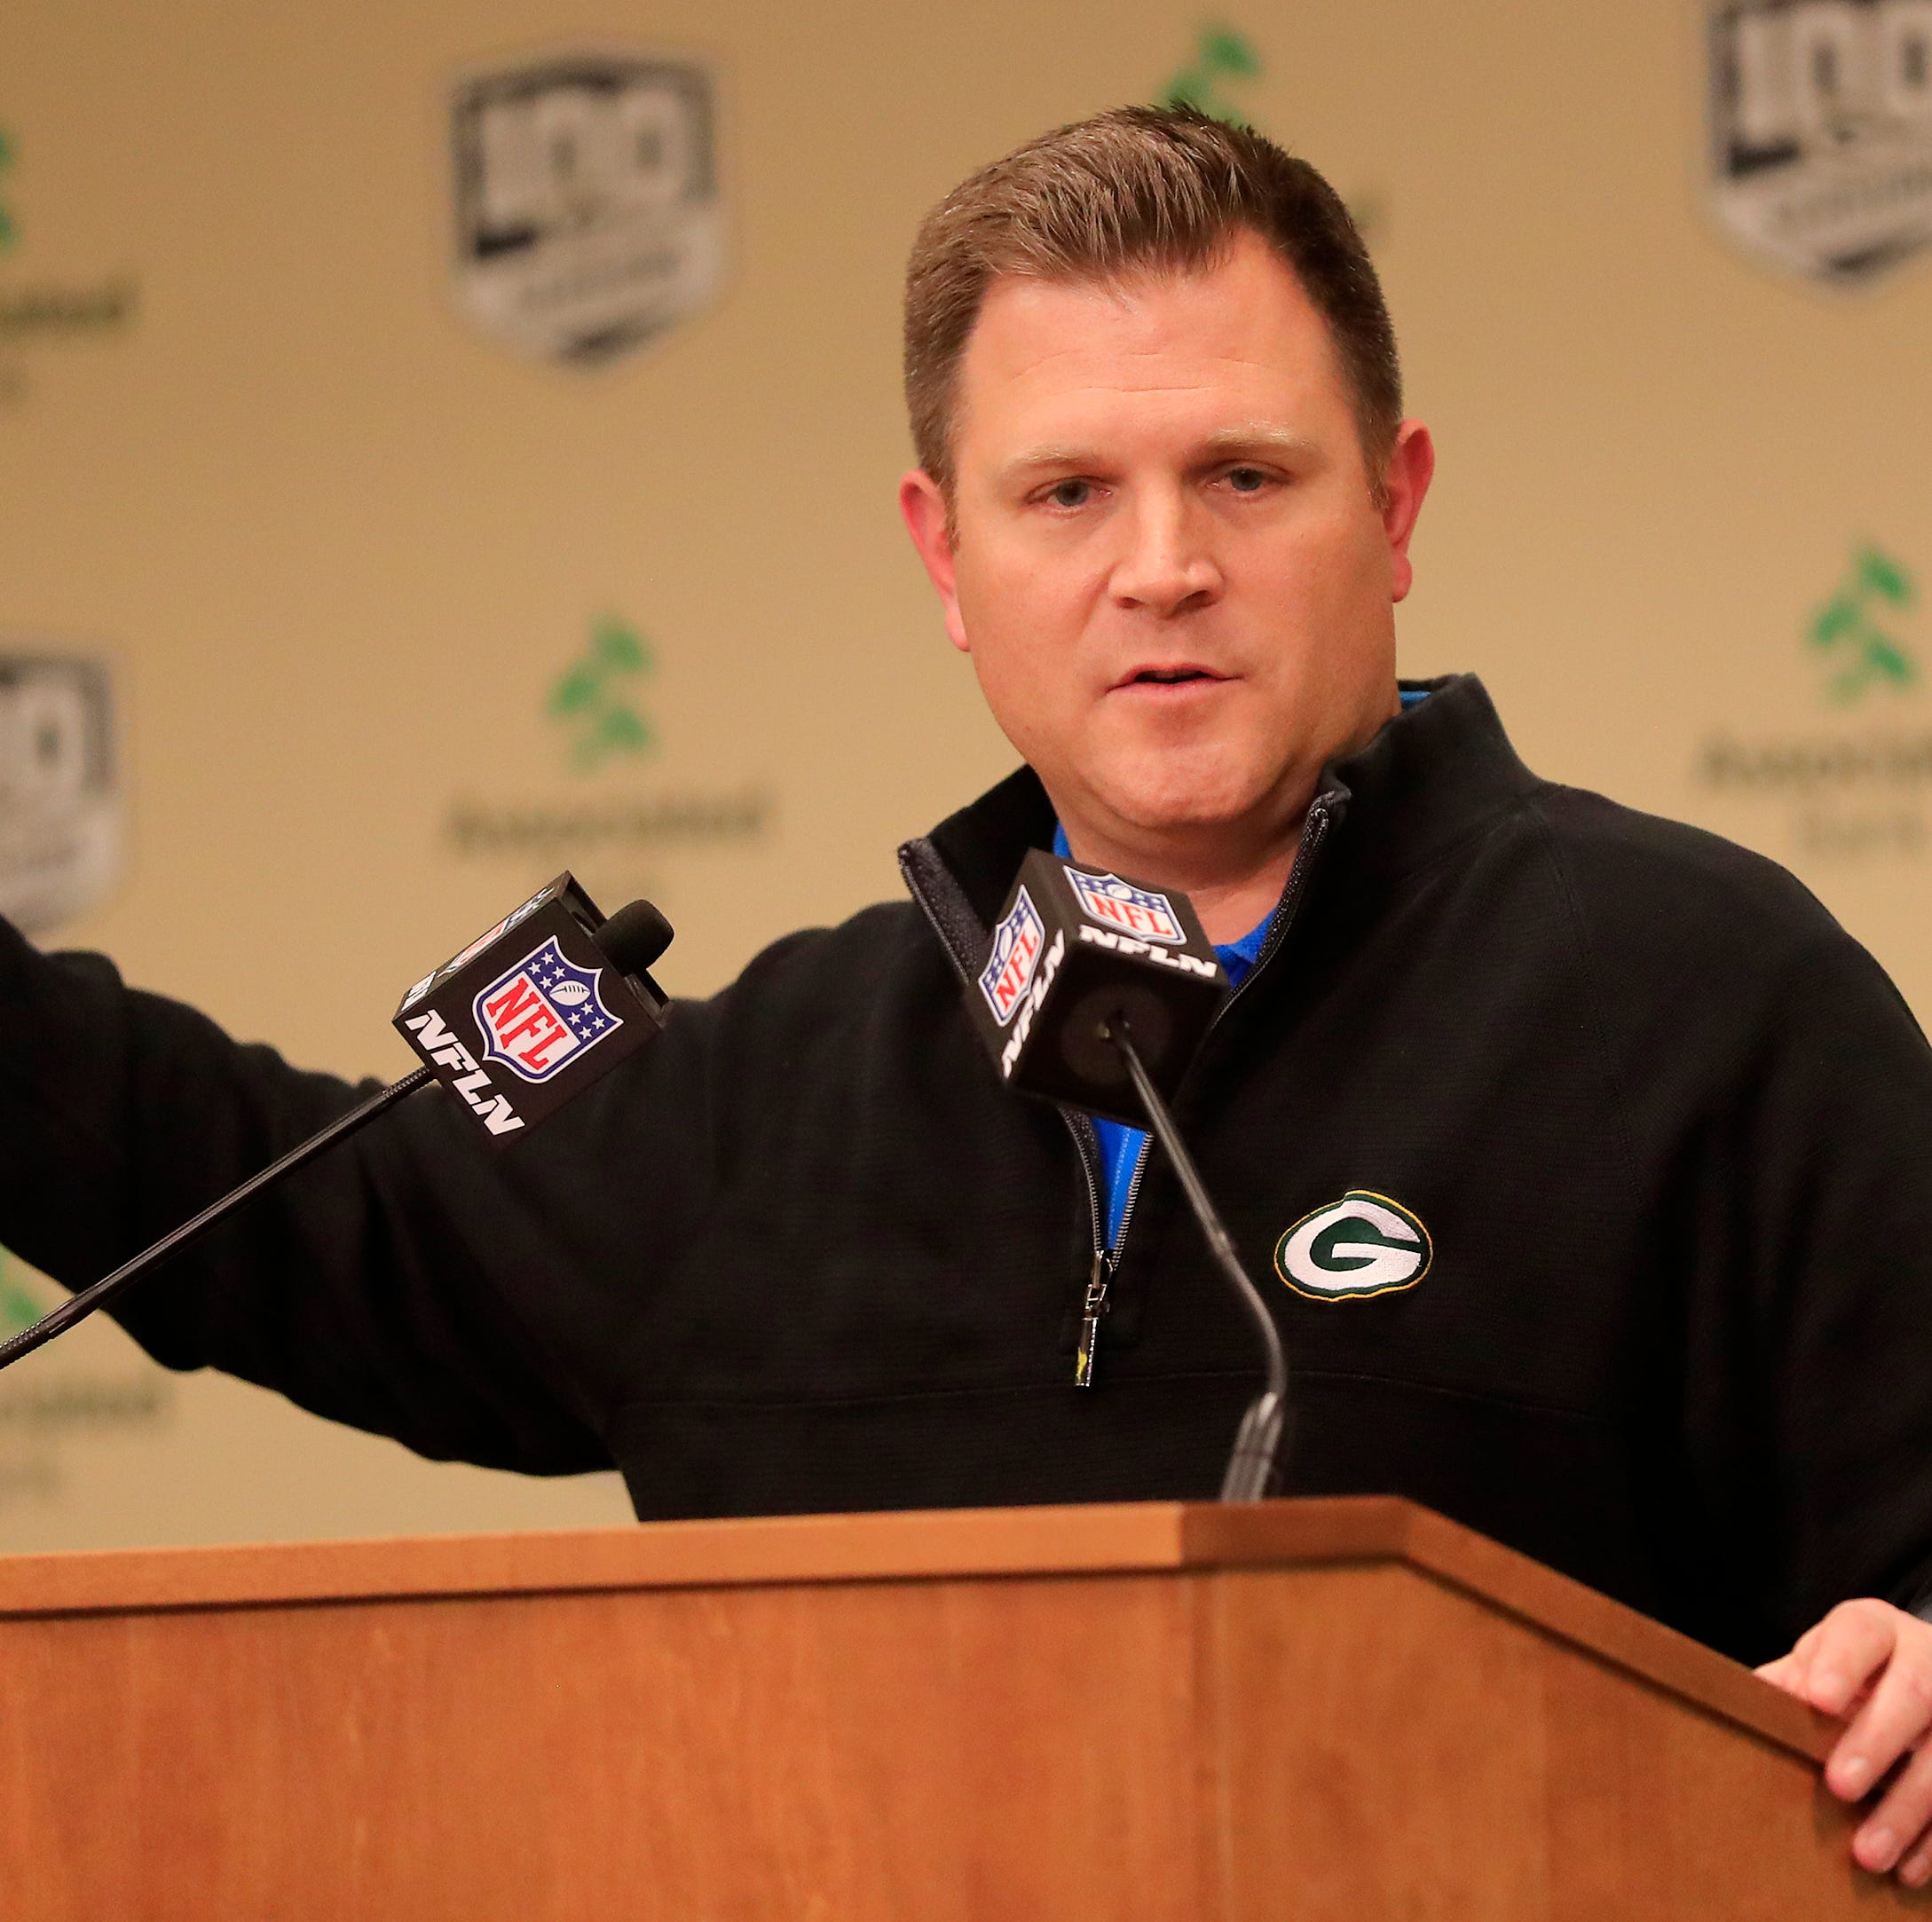 Packers Podcast: What will GM Brian Gutekunst do with his two 1st round picks?